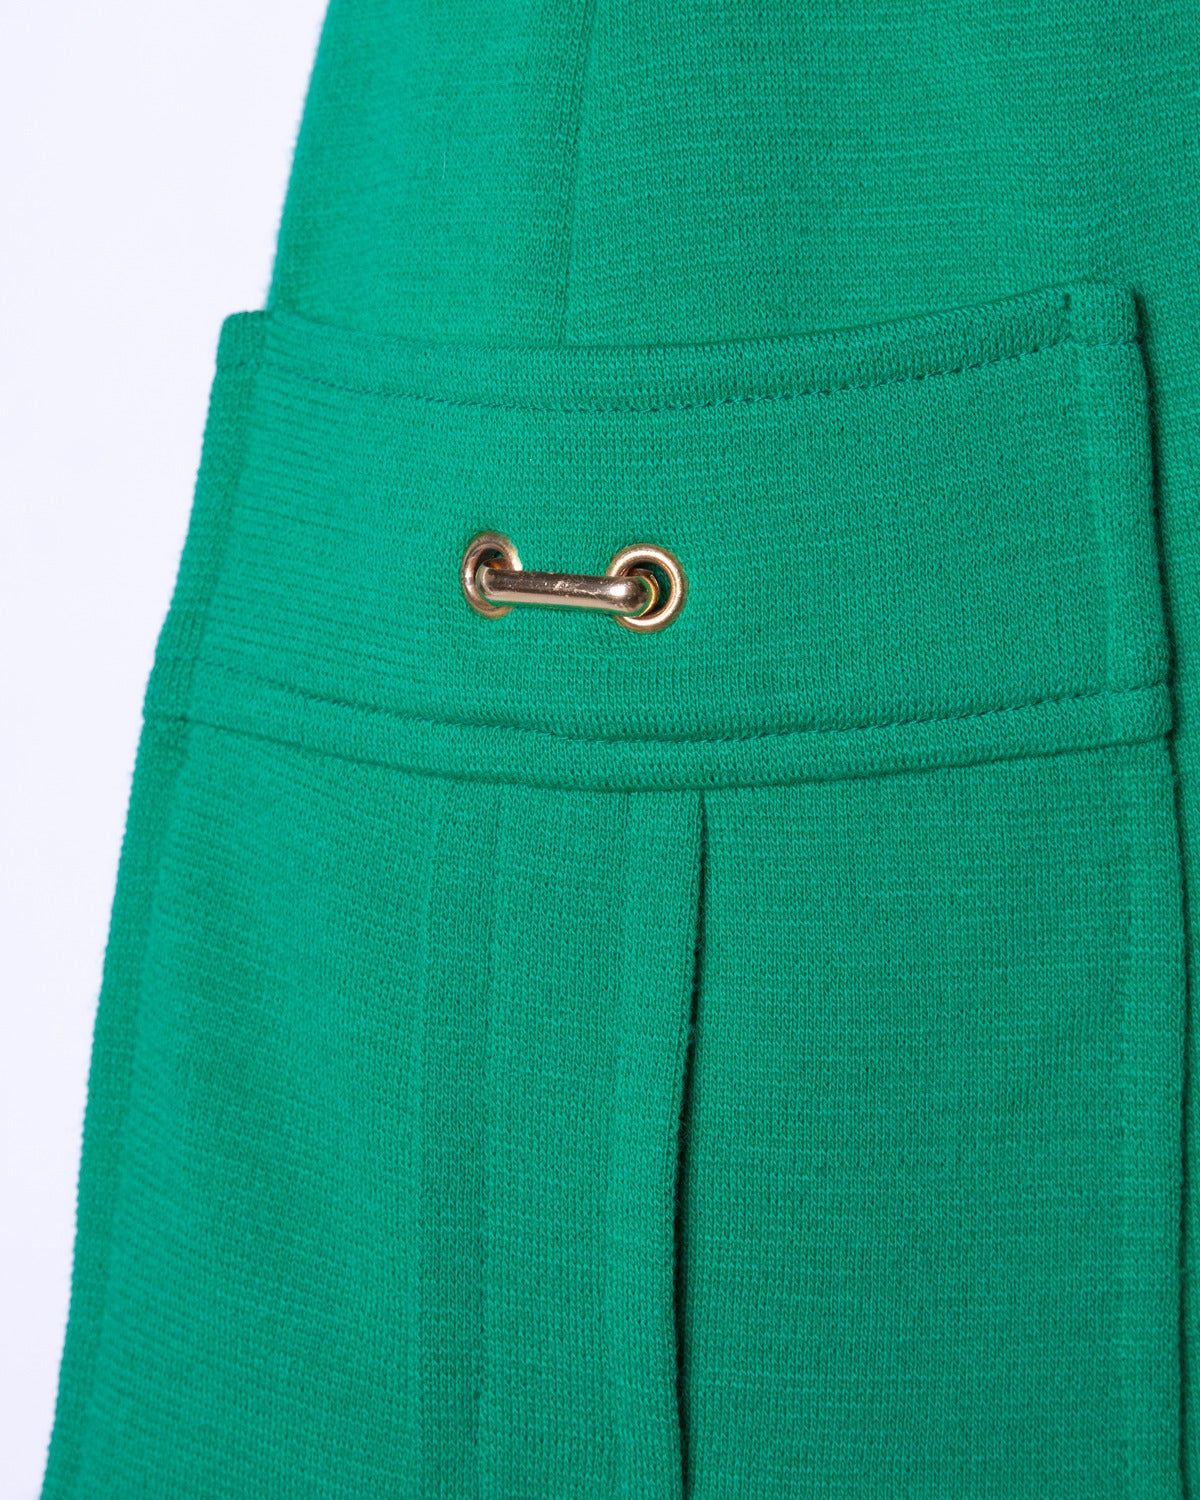 Vintage 1960s 60s Italian Wool Kelly Green Knit Skirt + Top 2-Piece Ensemble 3